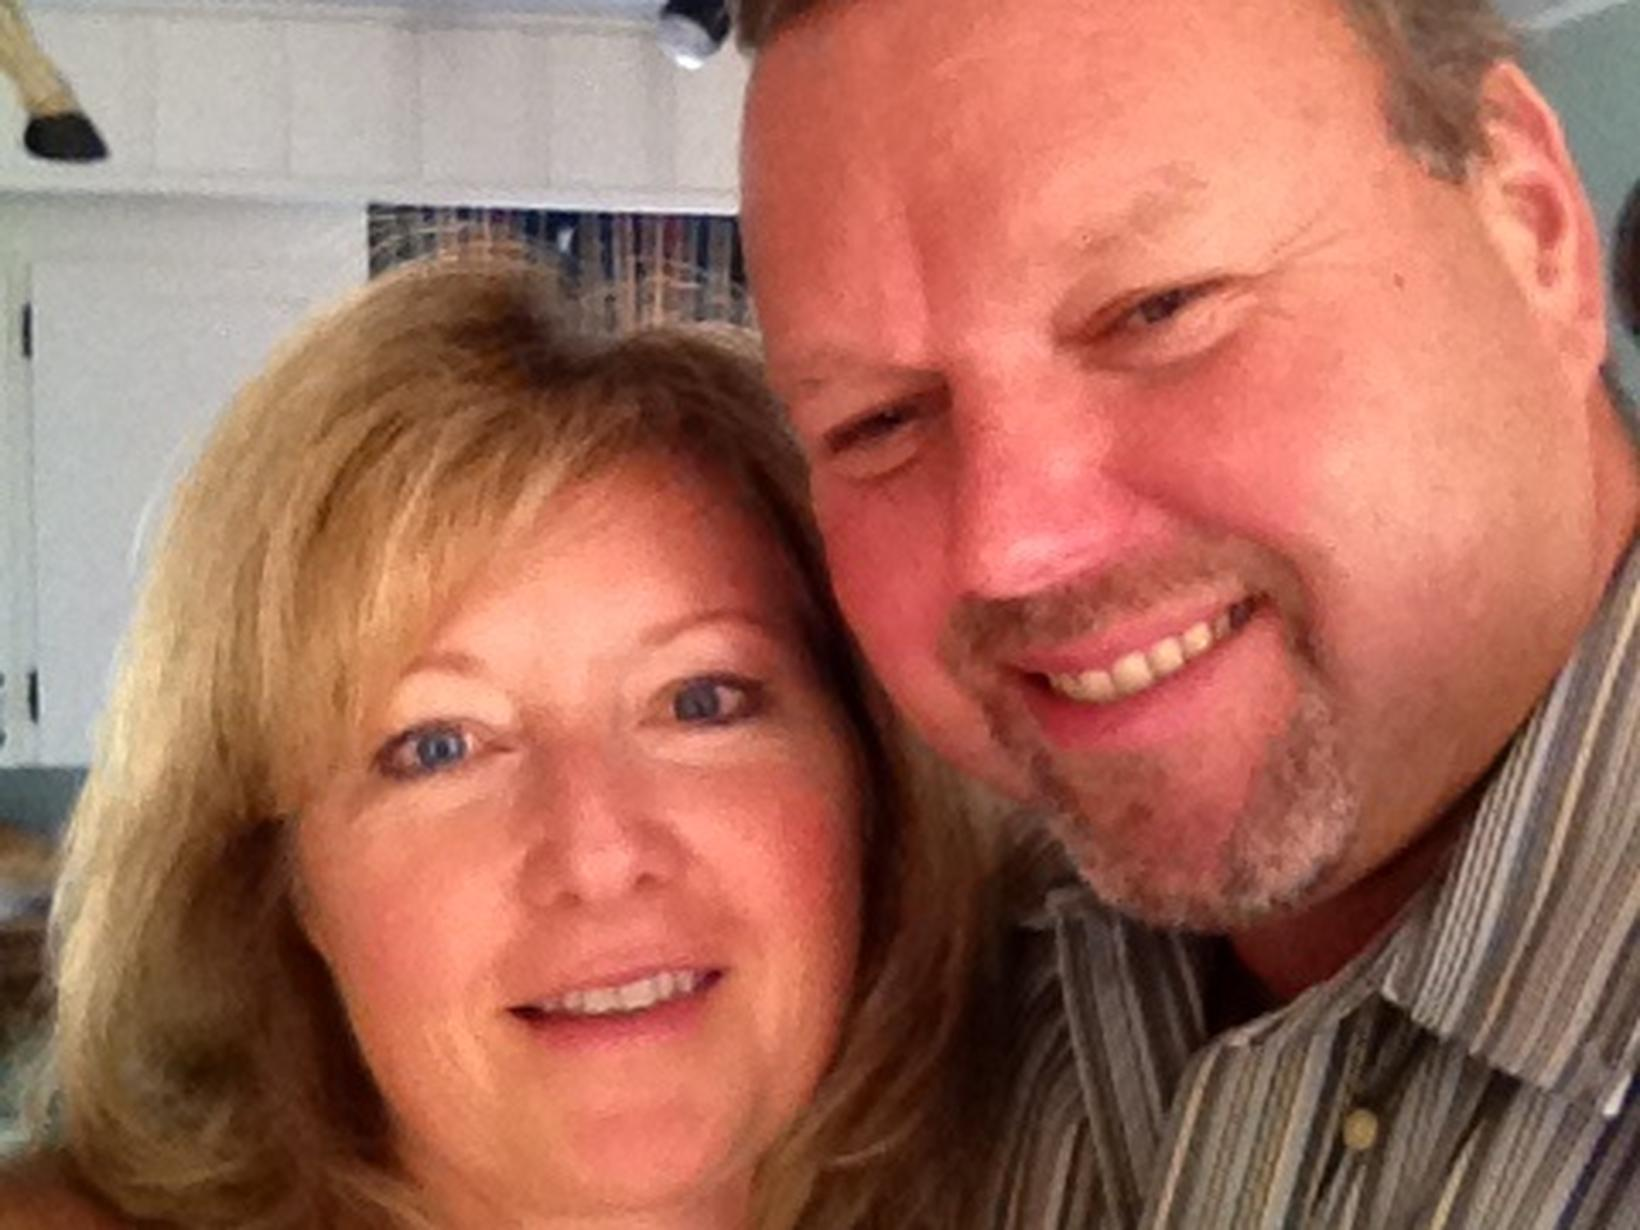 Laura & Wilhelm from Newmarket, Ontario, Canada